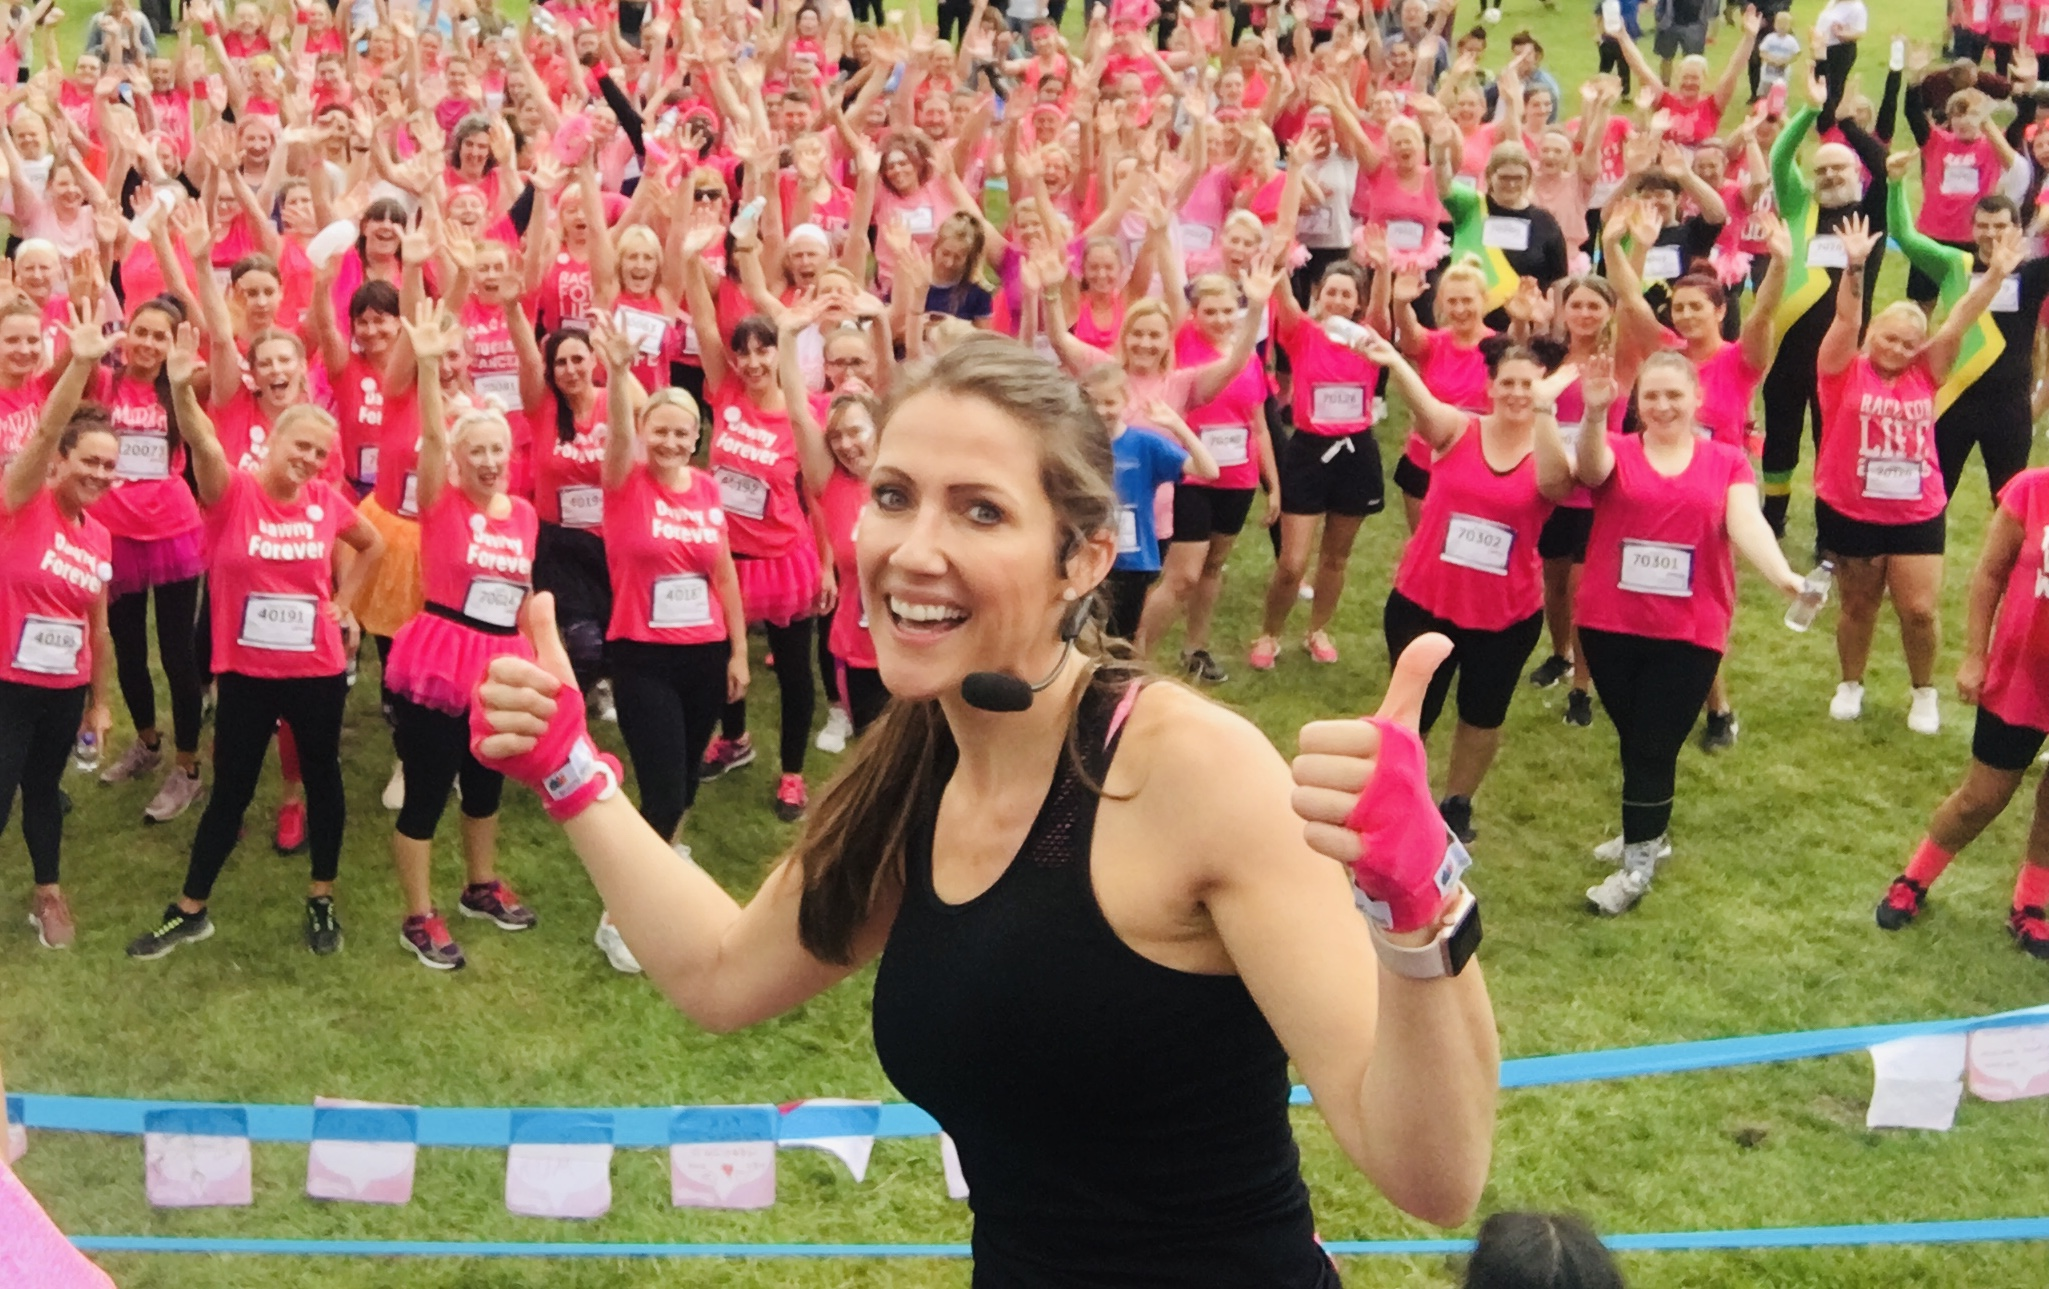 Stockport's Life Leisure launches 10-day challenge for Cancer Research UK